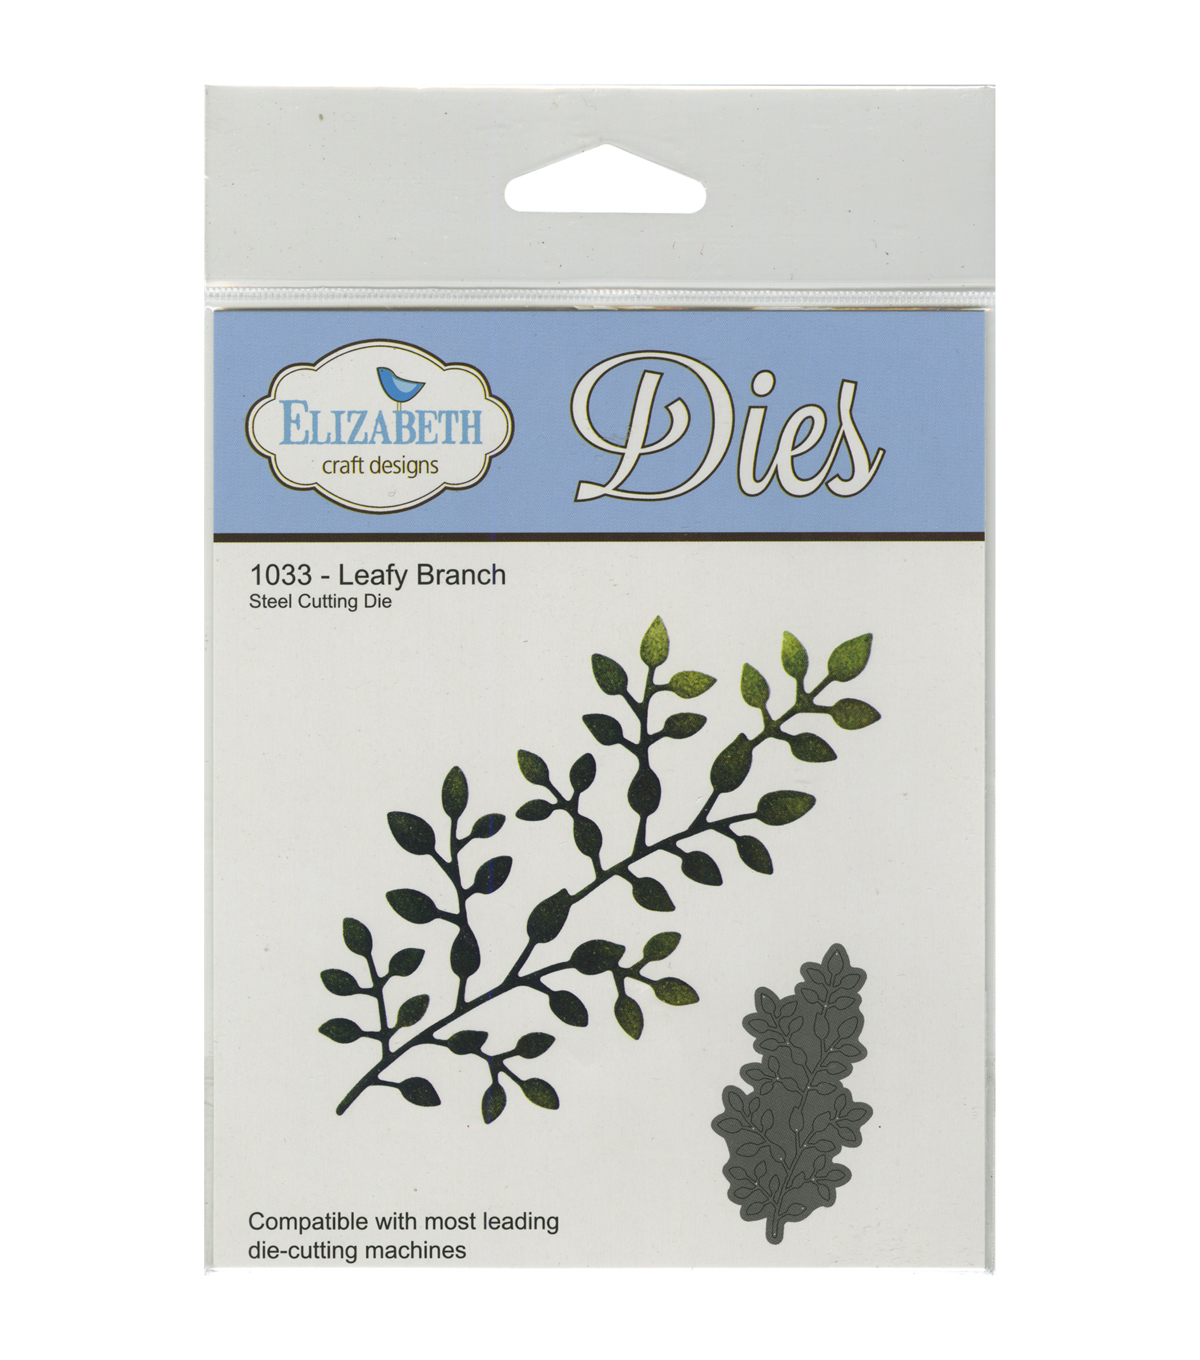 Elizabeth Craft Designs Metal Die-Leafy Branch